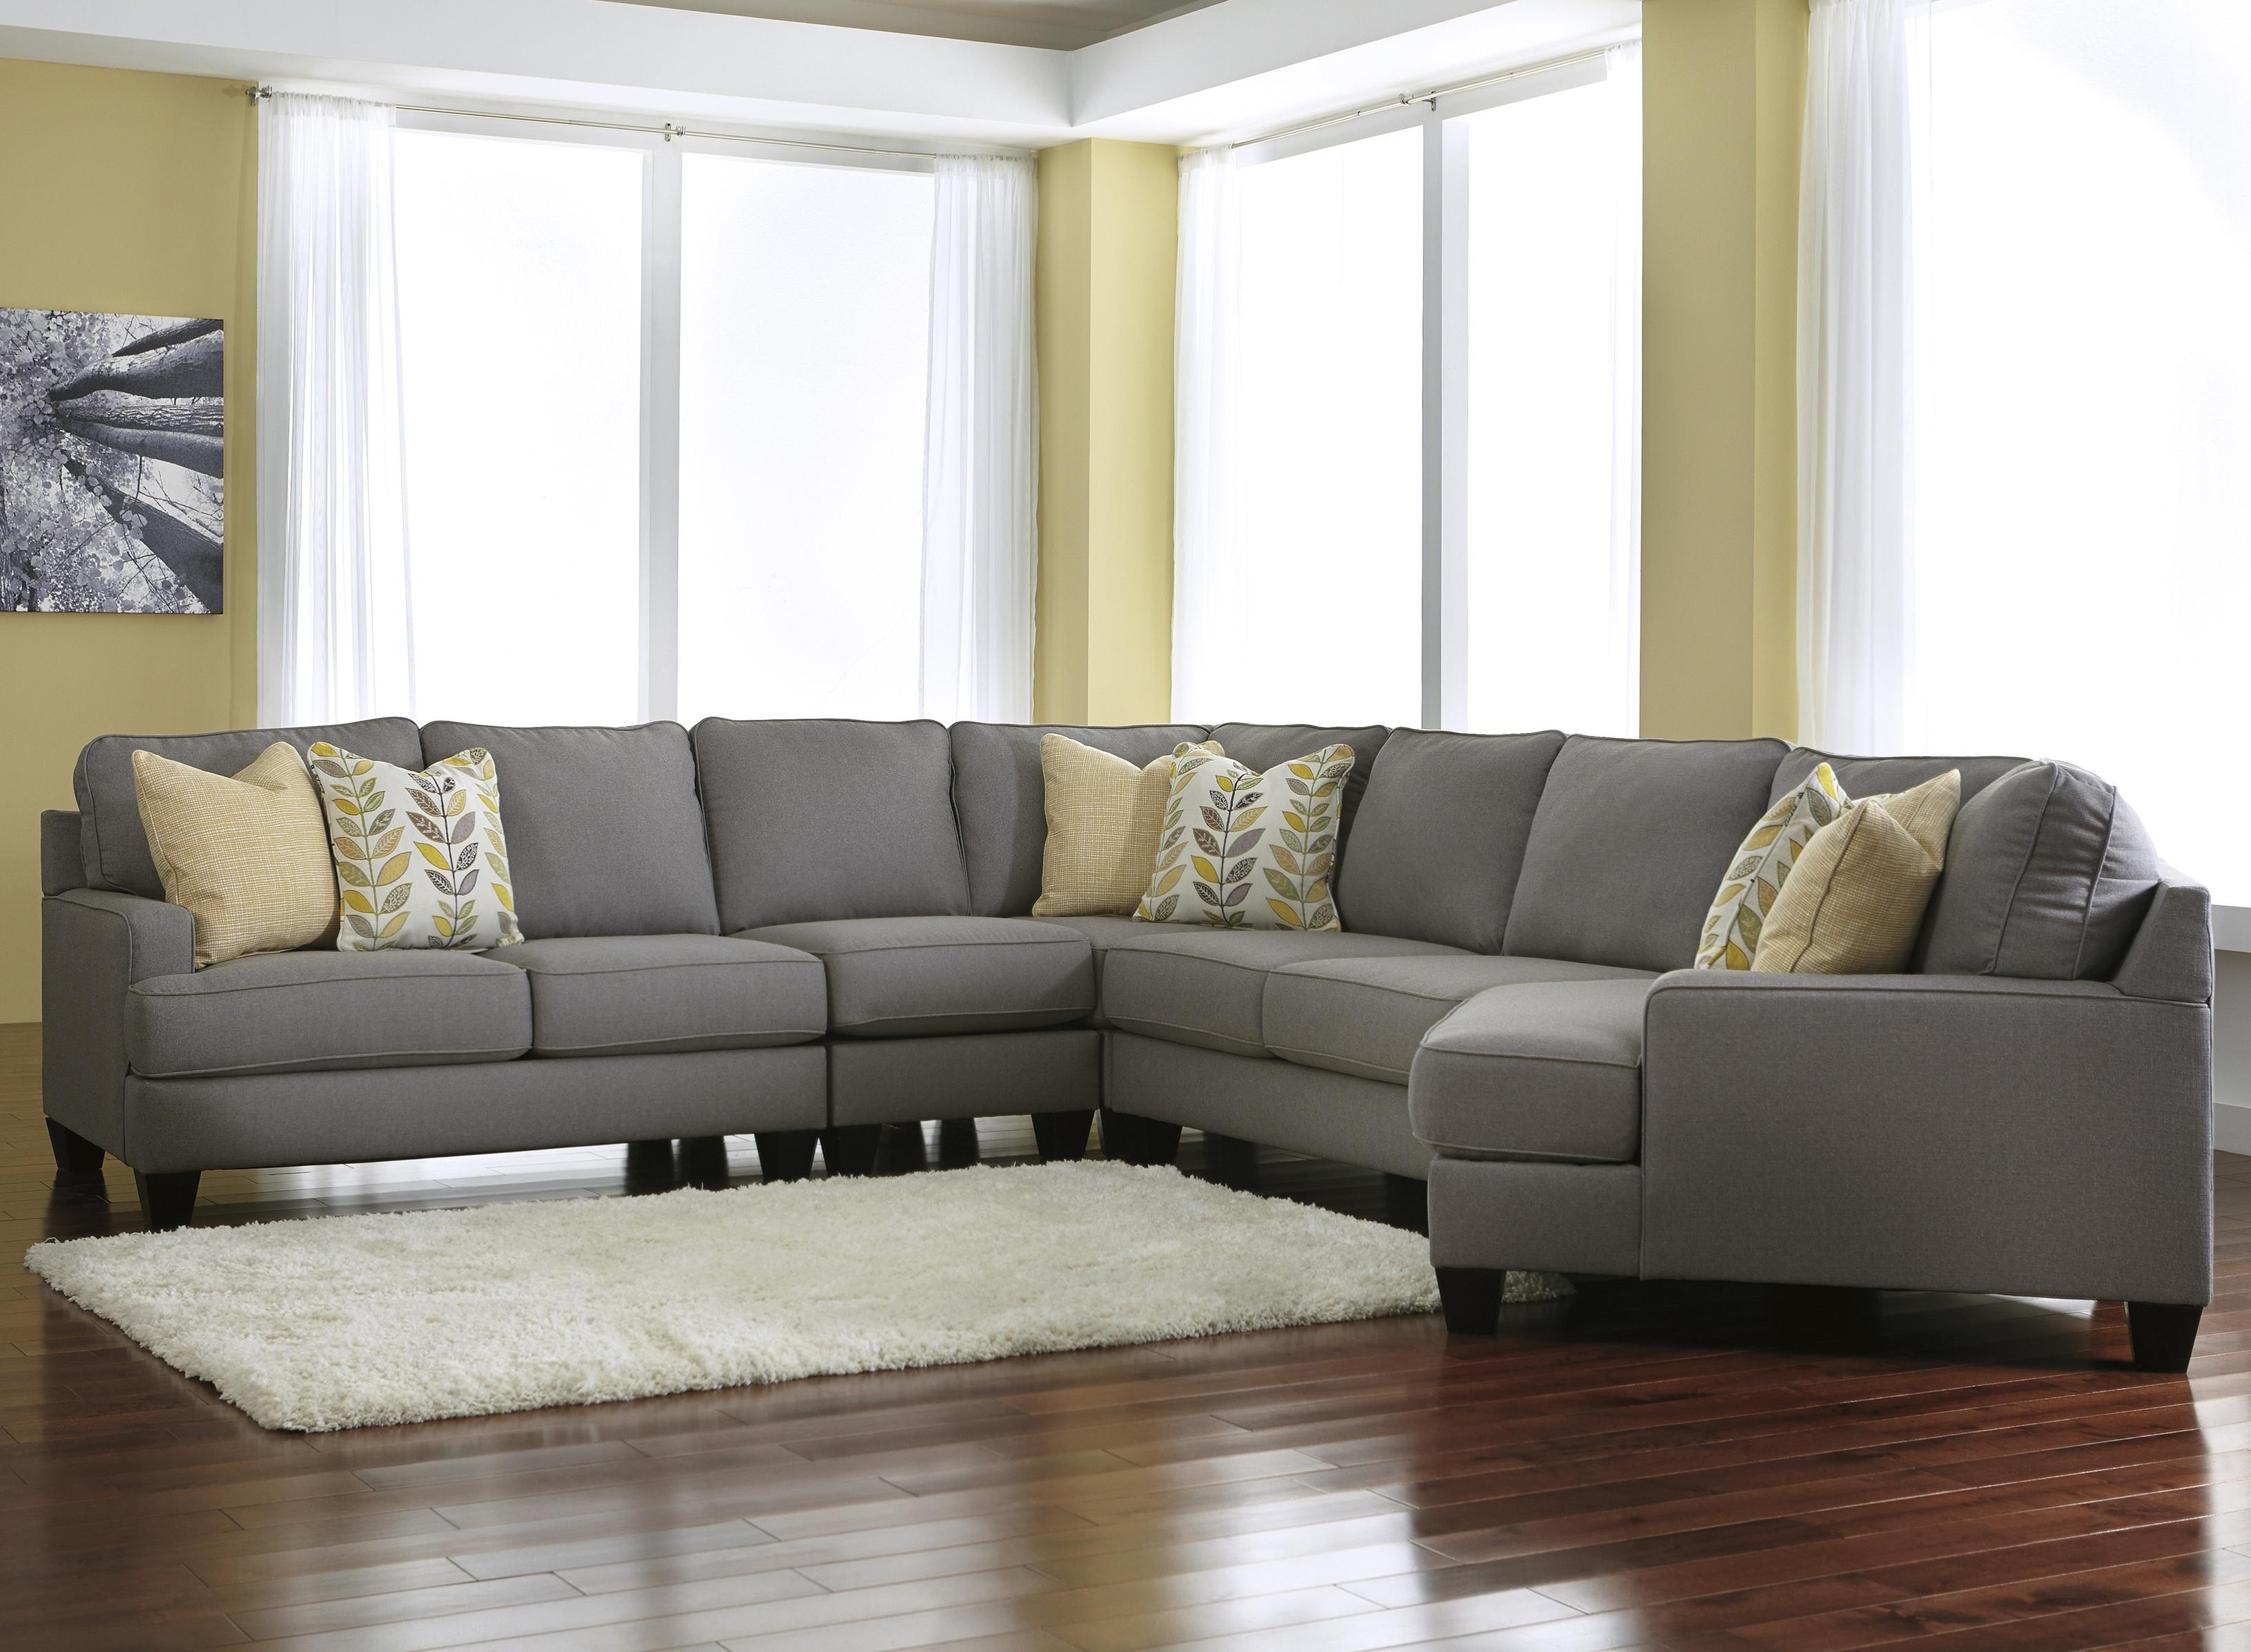 Signature Designashley Chamberly – Alloy Modern 5 Piece Intended For Cuddler Sectional Sofas (Image 10 of 10)